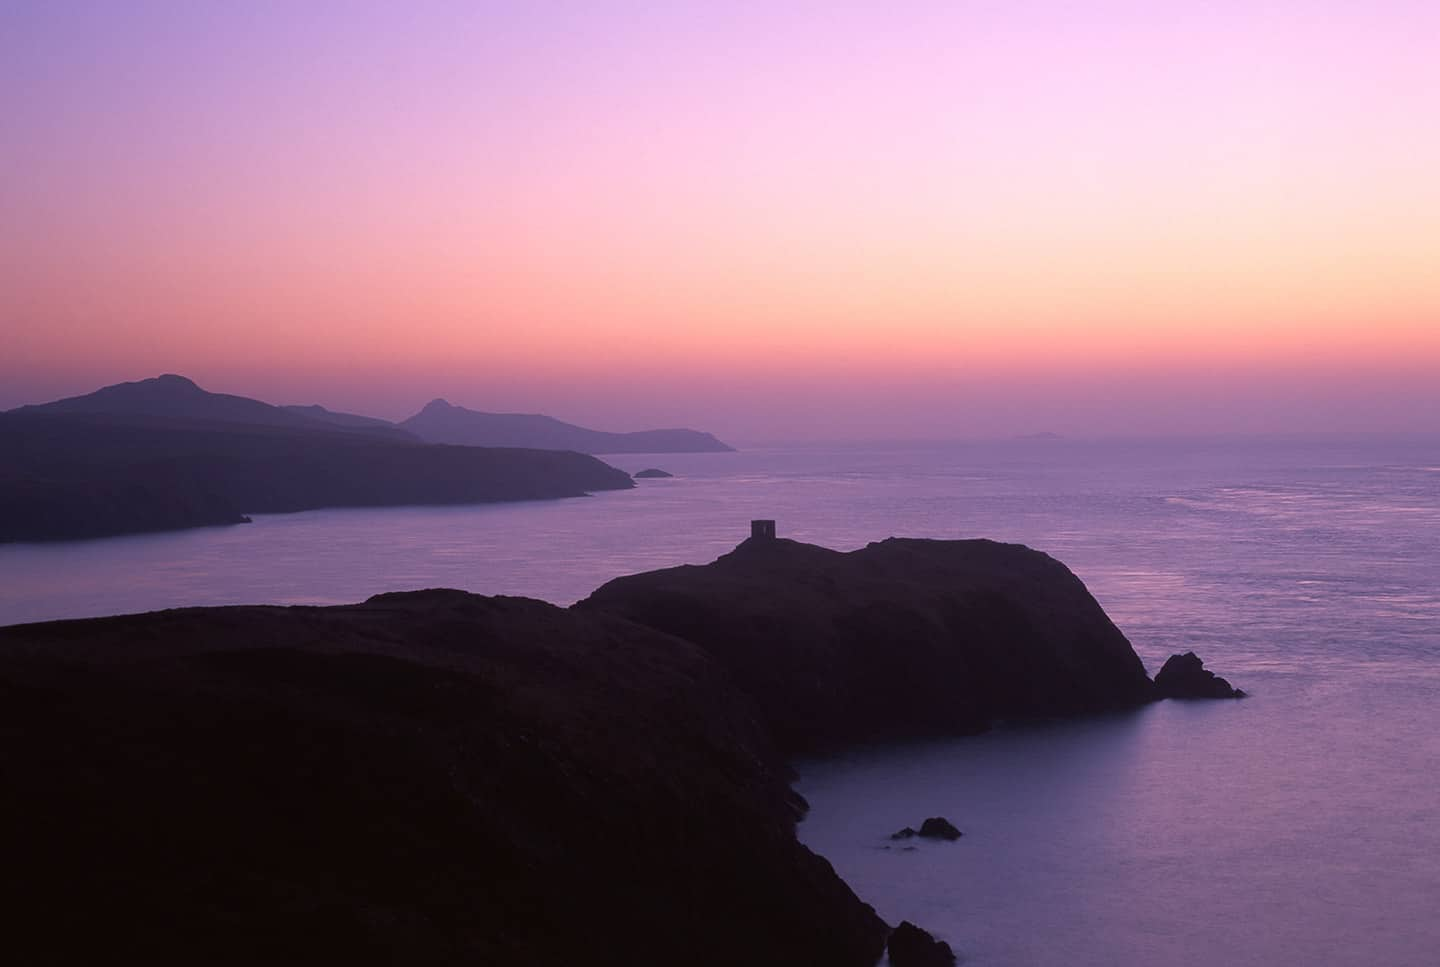 Image of Abereiddi and the Pembrokeshire coast, Wales, UK at sunset